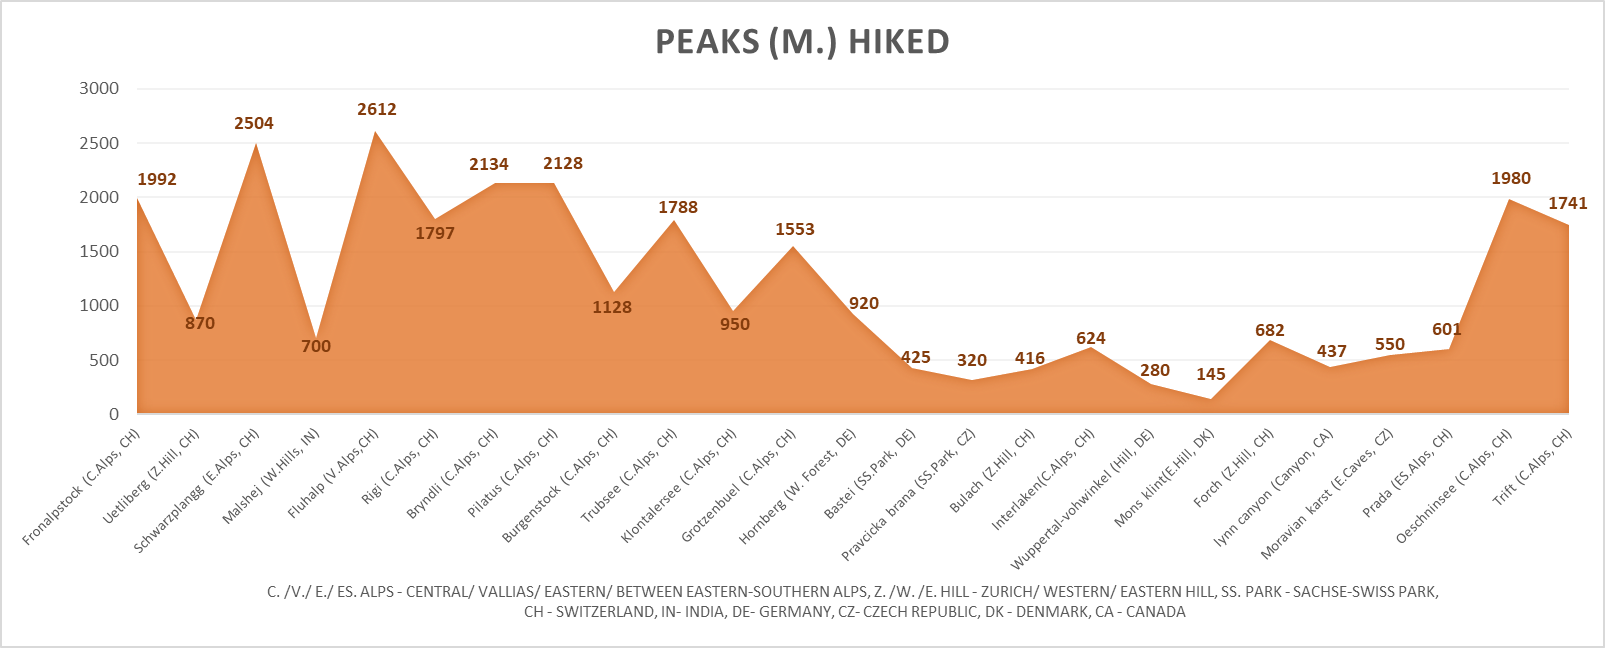 A chronological map of my hikes – The dip for the peaks accurately shows the winters, with most peaks closed (except for skiing) for hikes